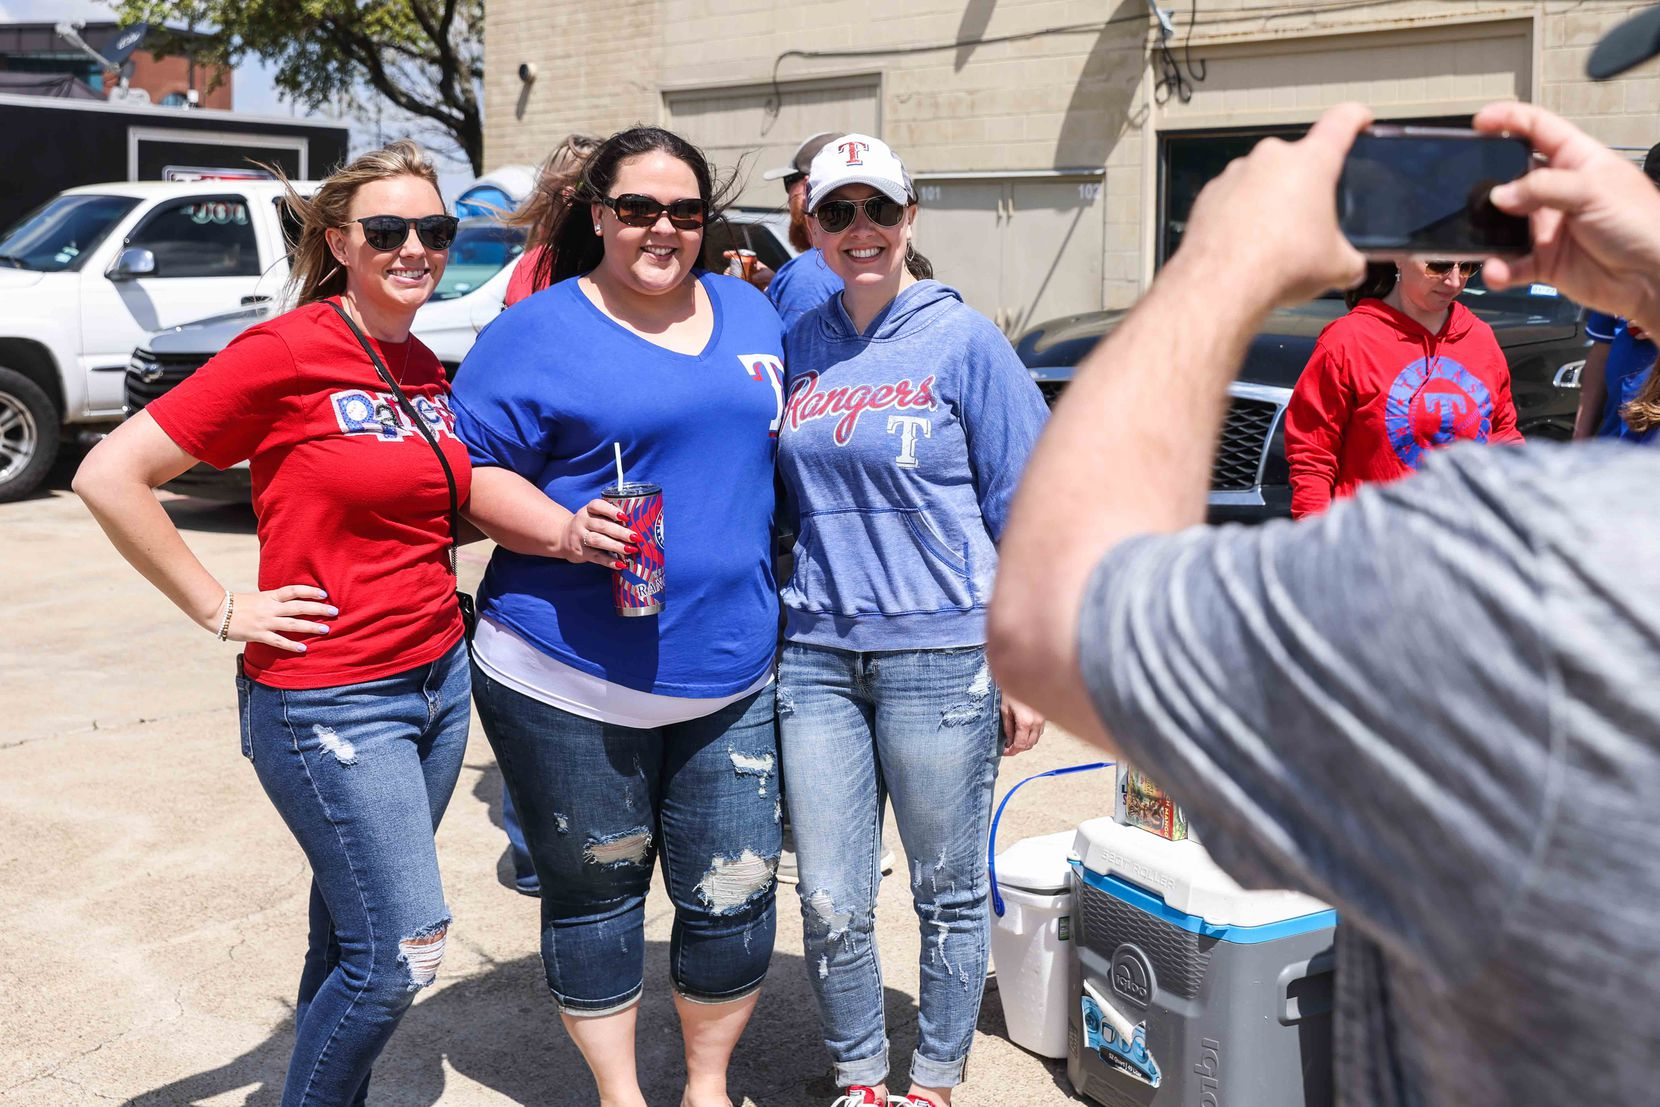 Alyssa Mitchell, Kristin Griffin and Melissa Cade pose together for a photo outside the Globe Life Field in Arlington, Texas on Monday, April 5, 2021,  before the game between Texas Rangers and Toronto Blue Jays on opening day. (Lola Gomez/The Dallas Morning News)